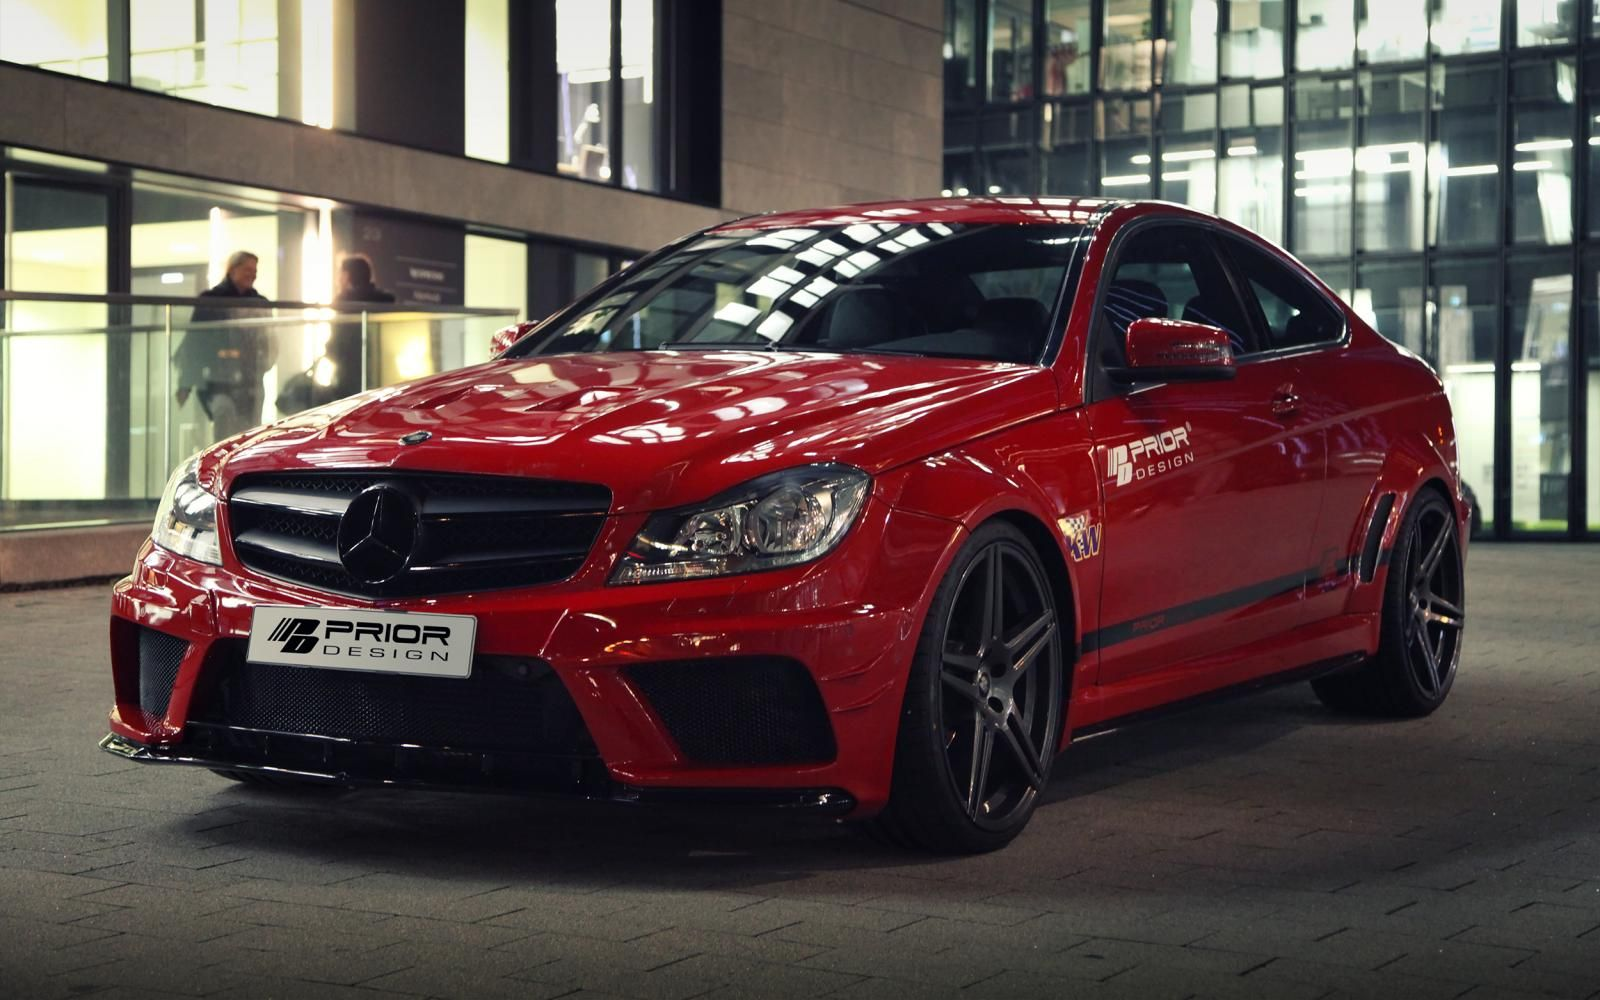 Black bison edition tuning package for the w204 mercedes benz c class - Automotivated Prior Design Mercedes Benz C Class Coupe Black Edition By Germancarscene